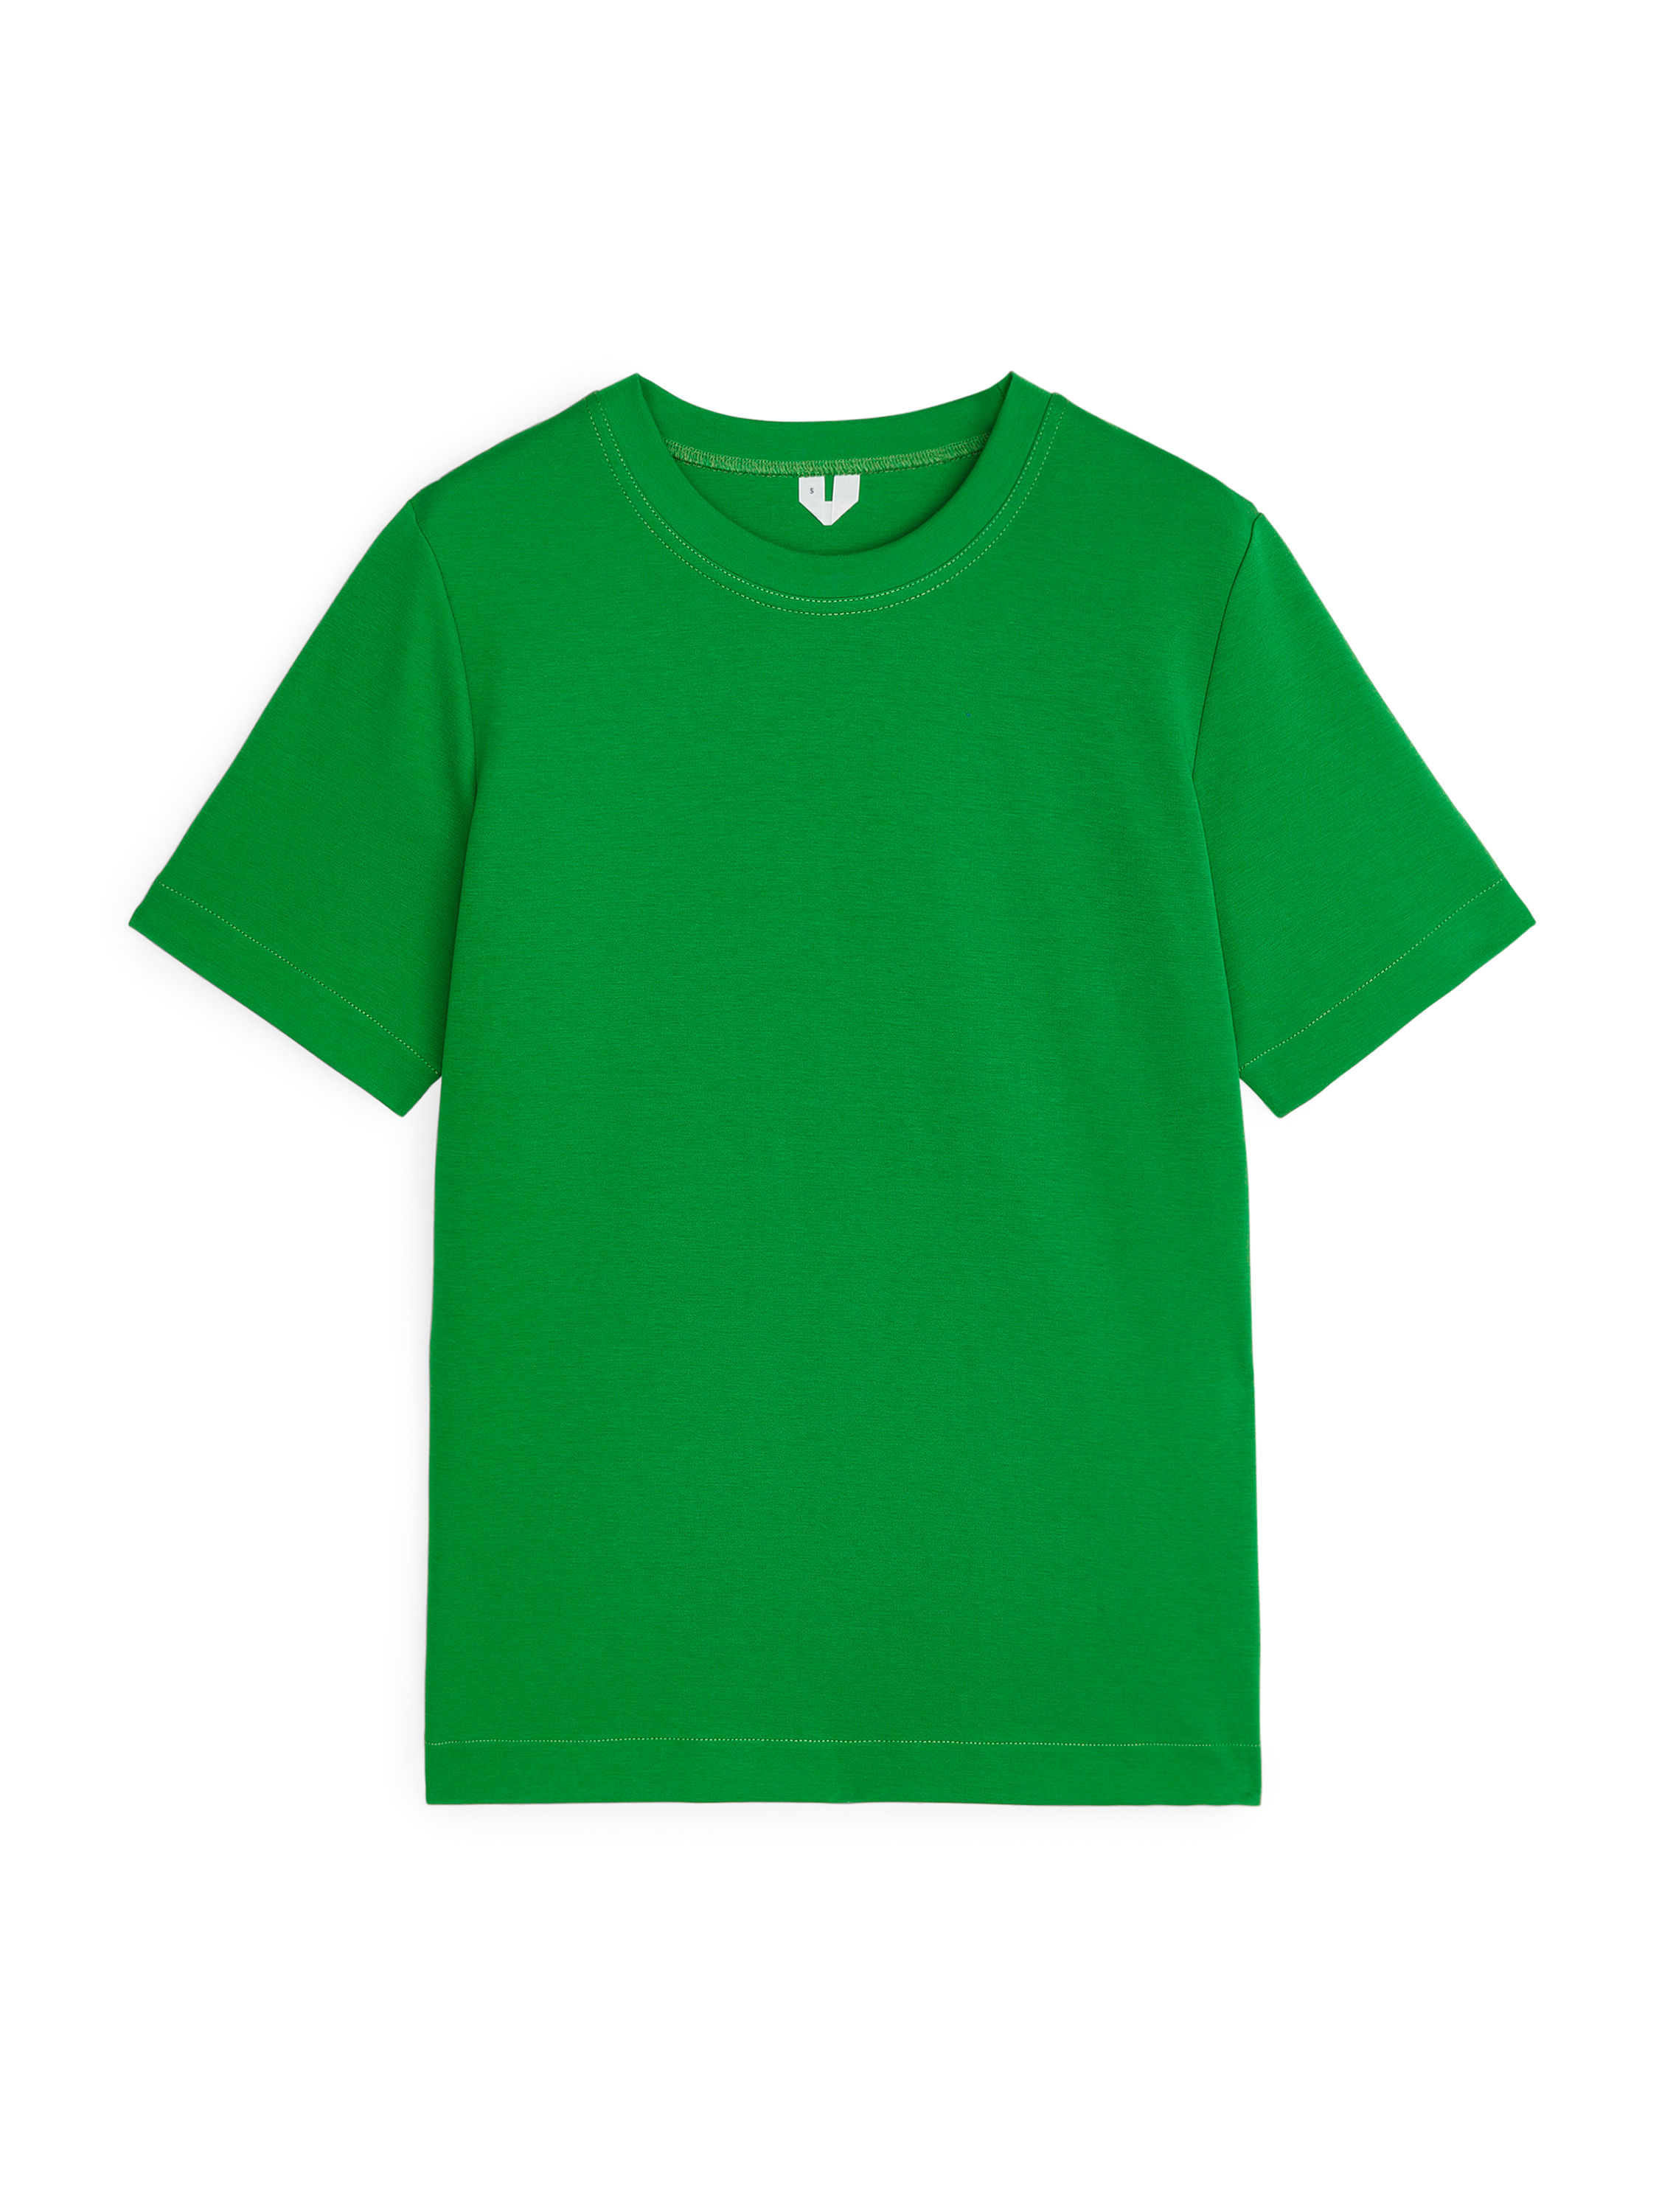 Fabric Swatch image of Arket heavy-weight t-shirt in green